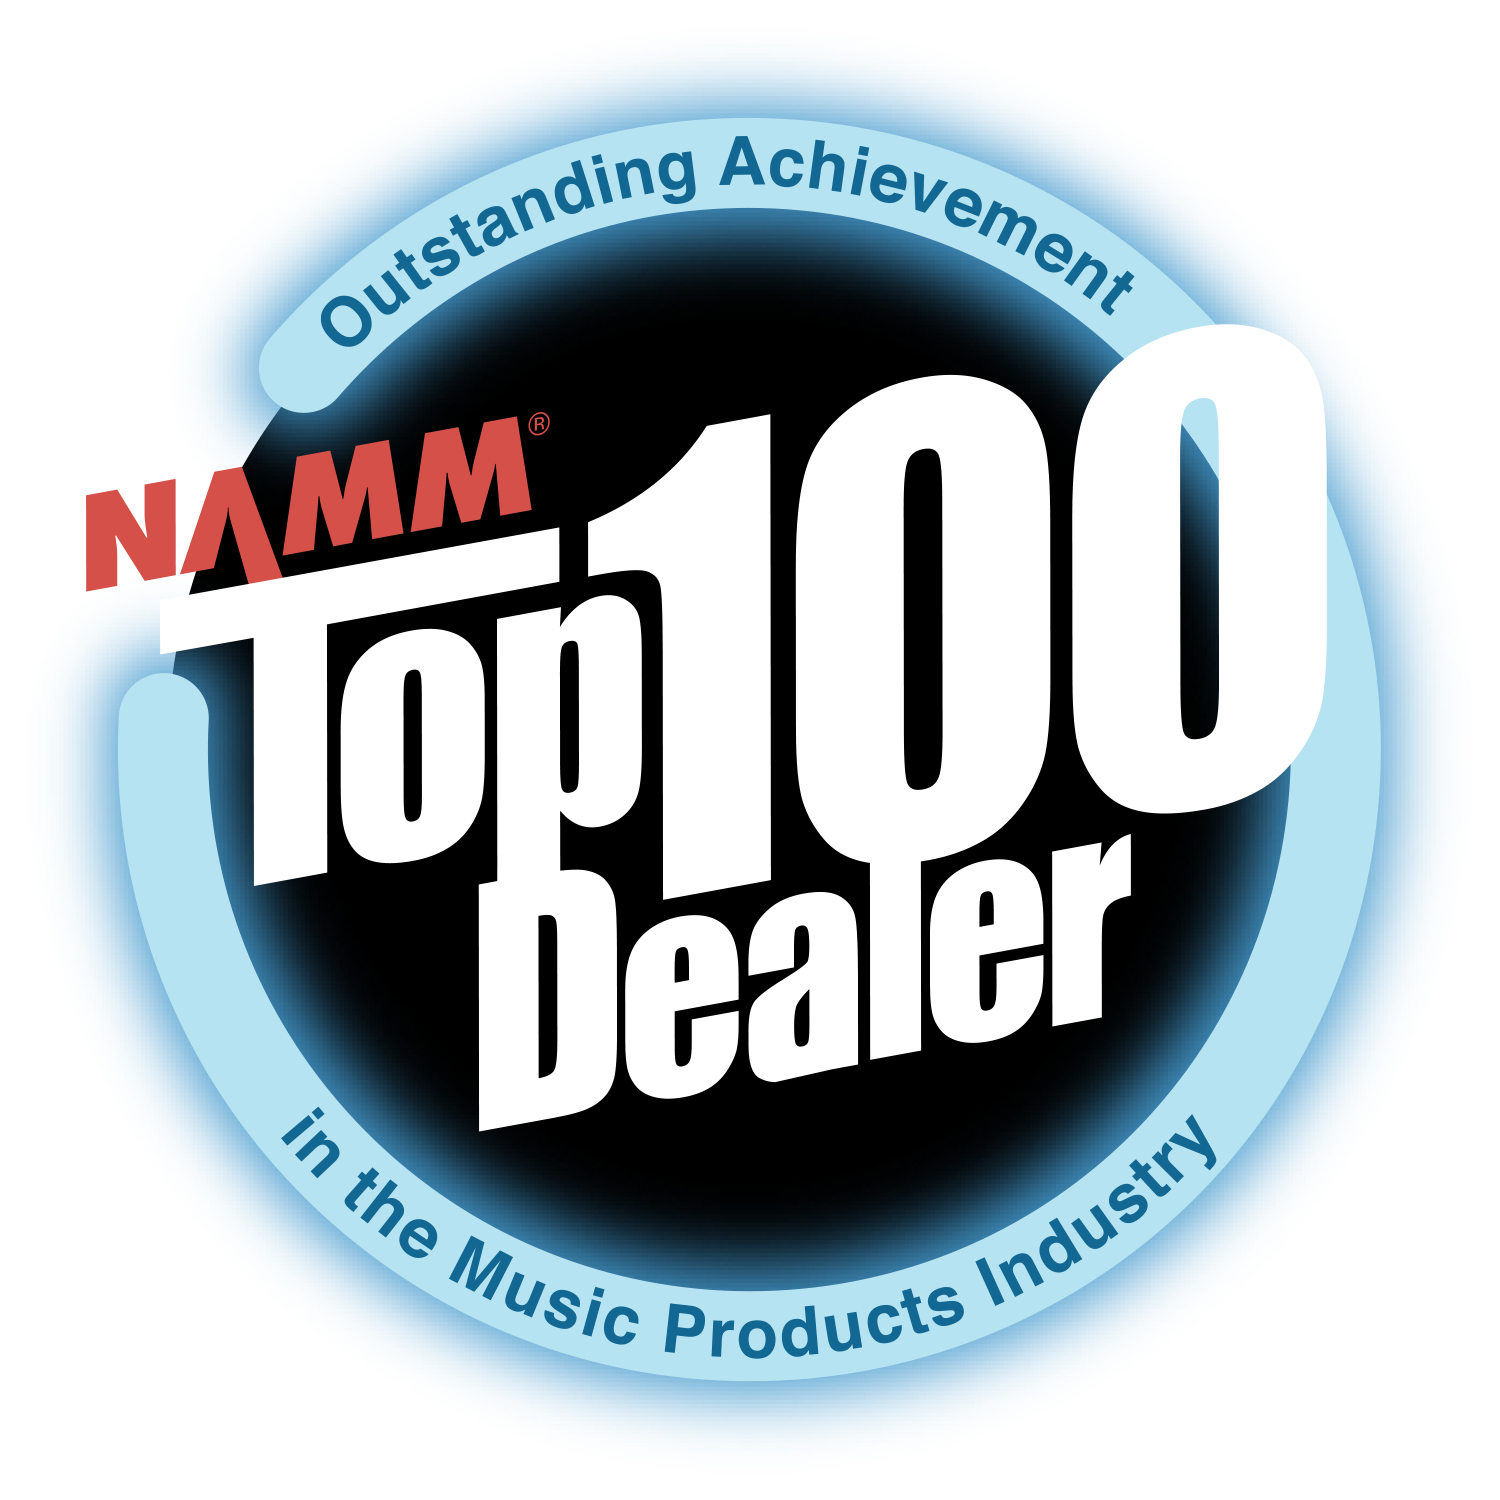 NAMM Top 100 Dealer Badge